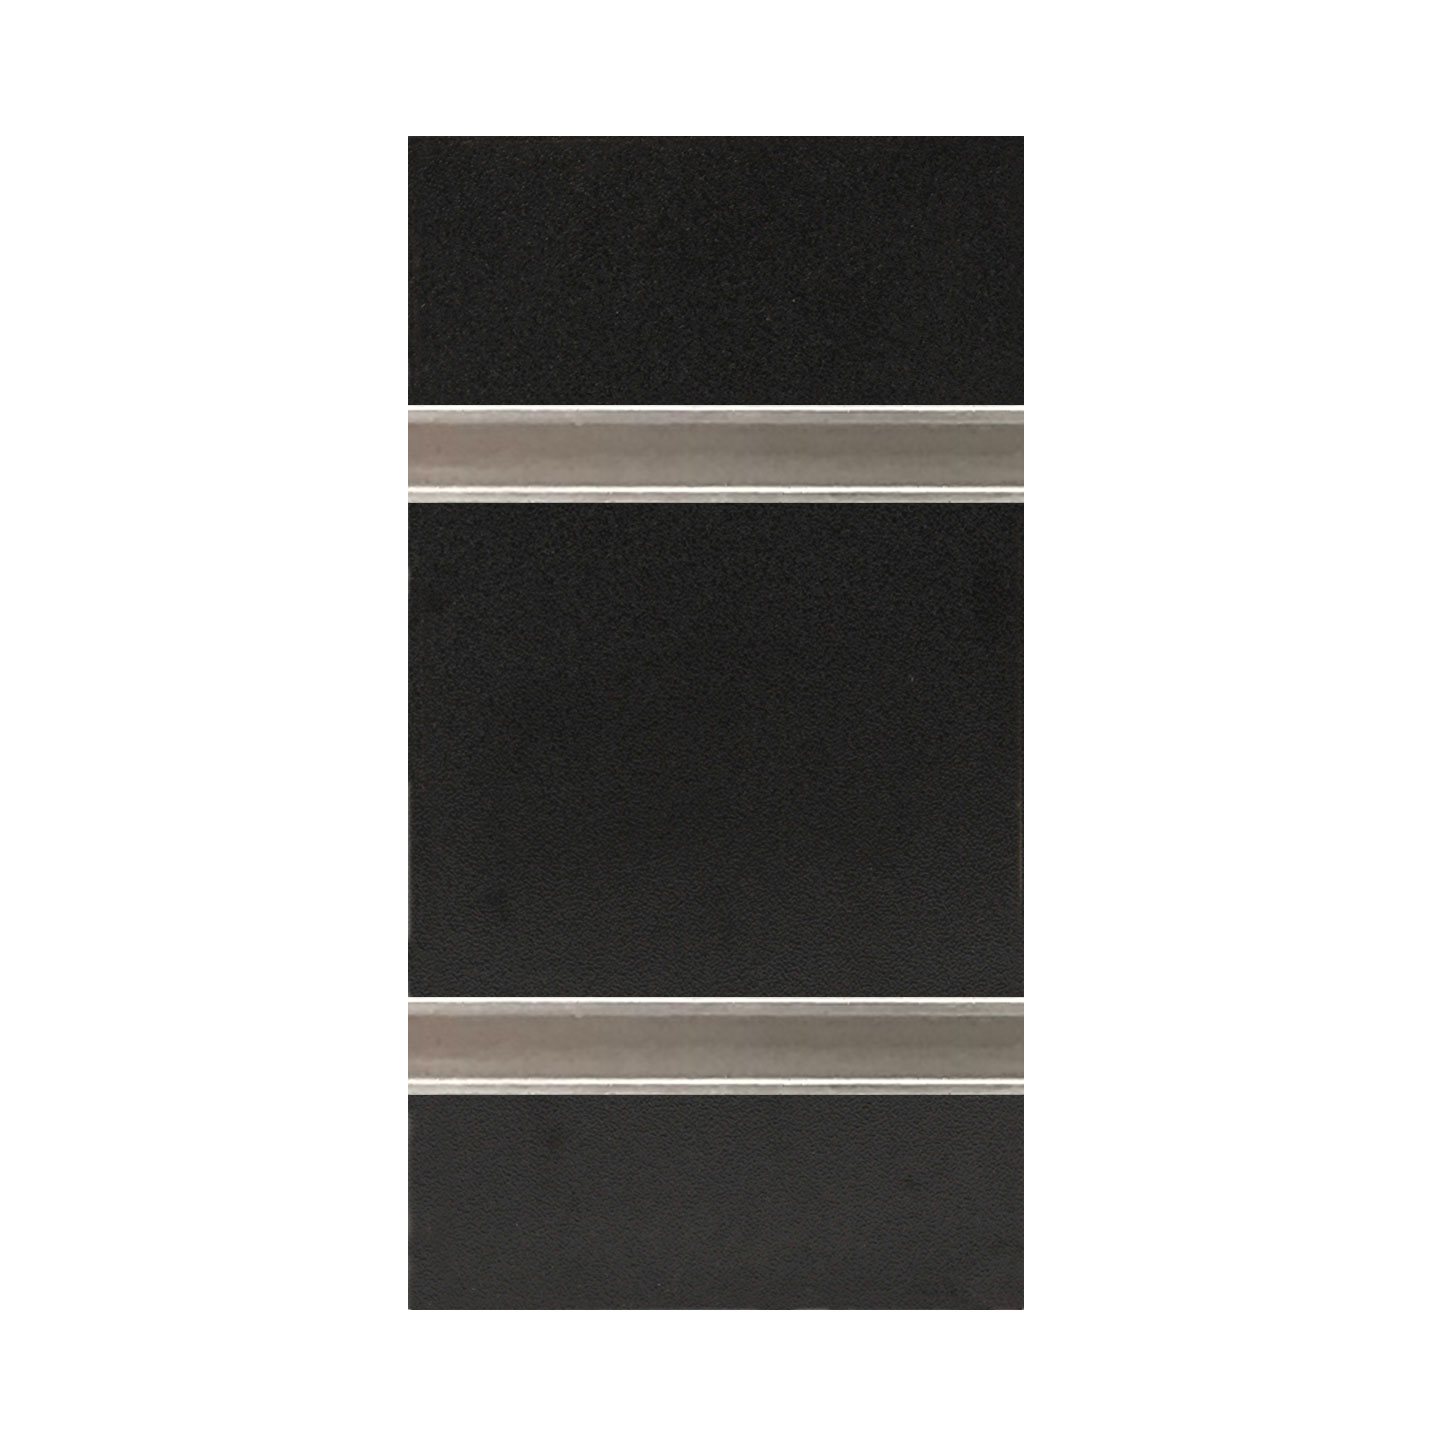 3″ O.C. Black MDF Slatwall – 18mm